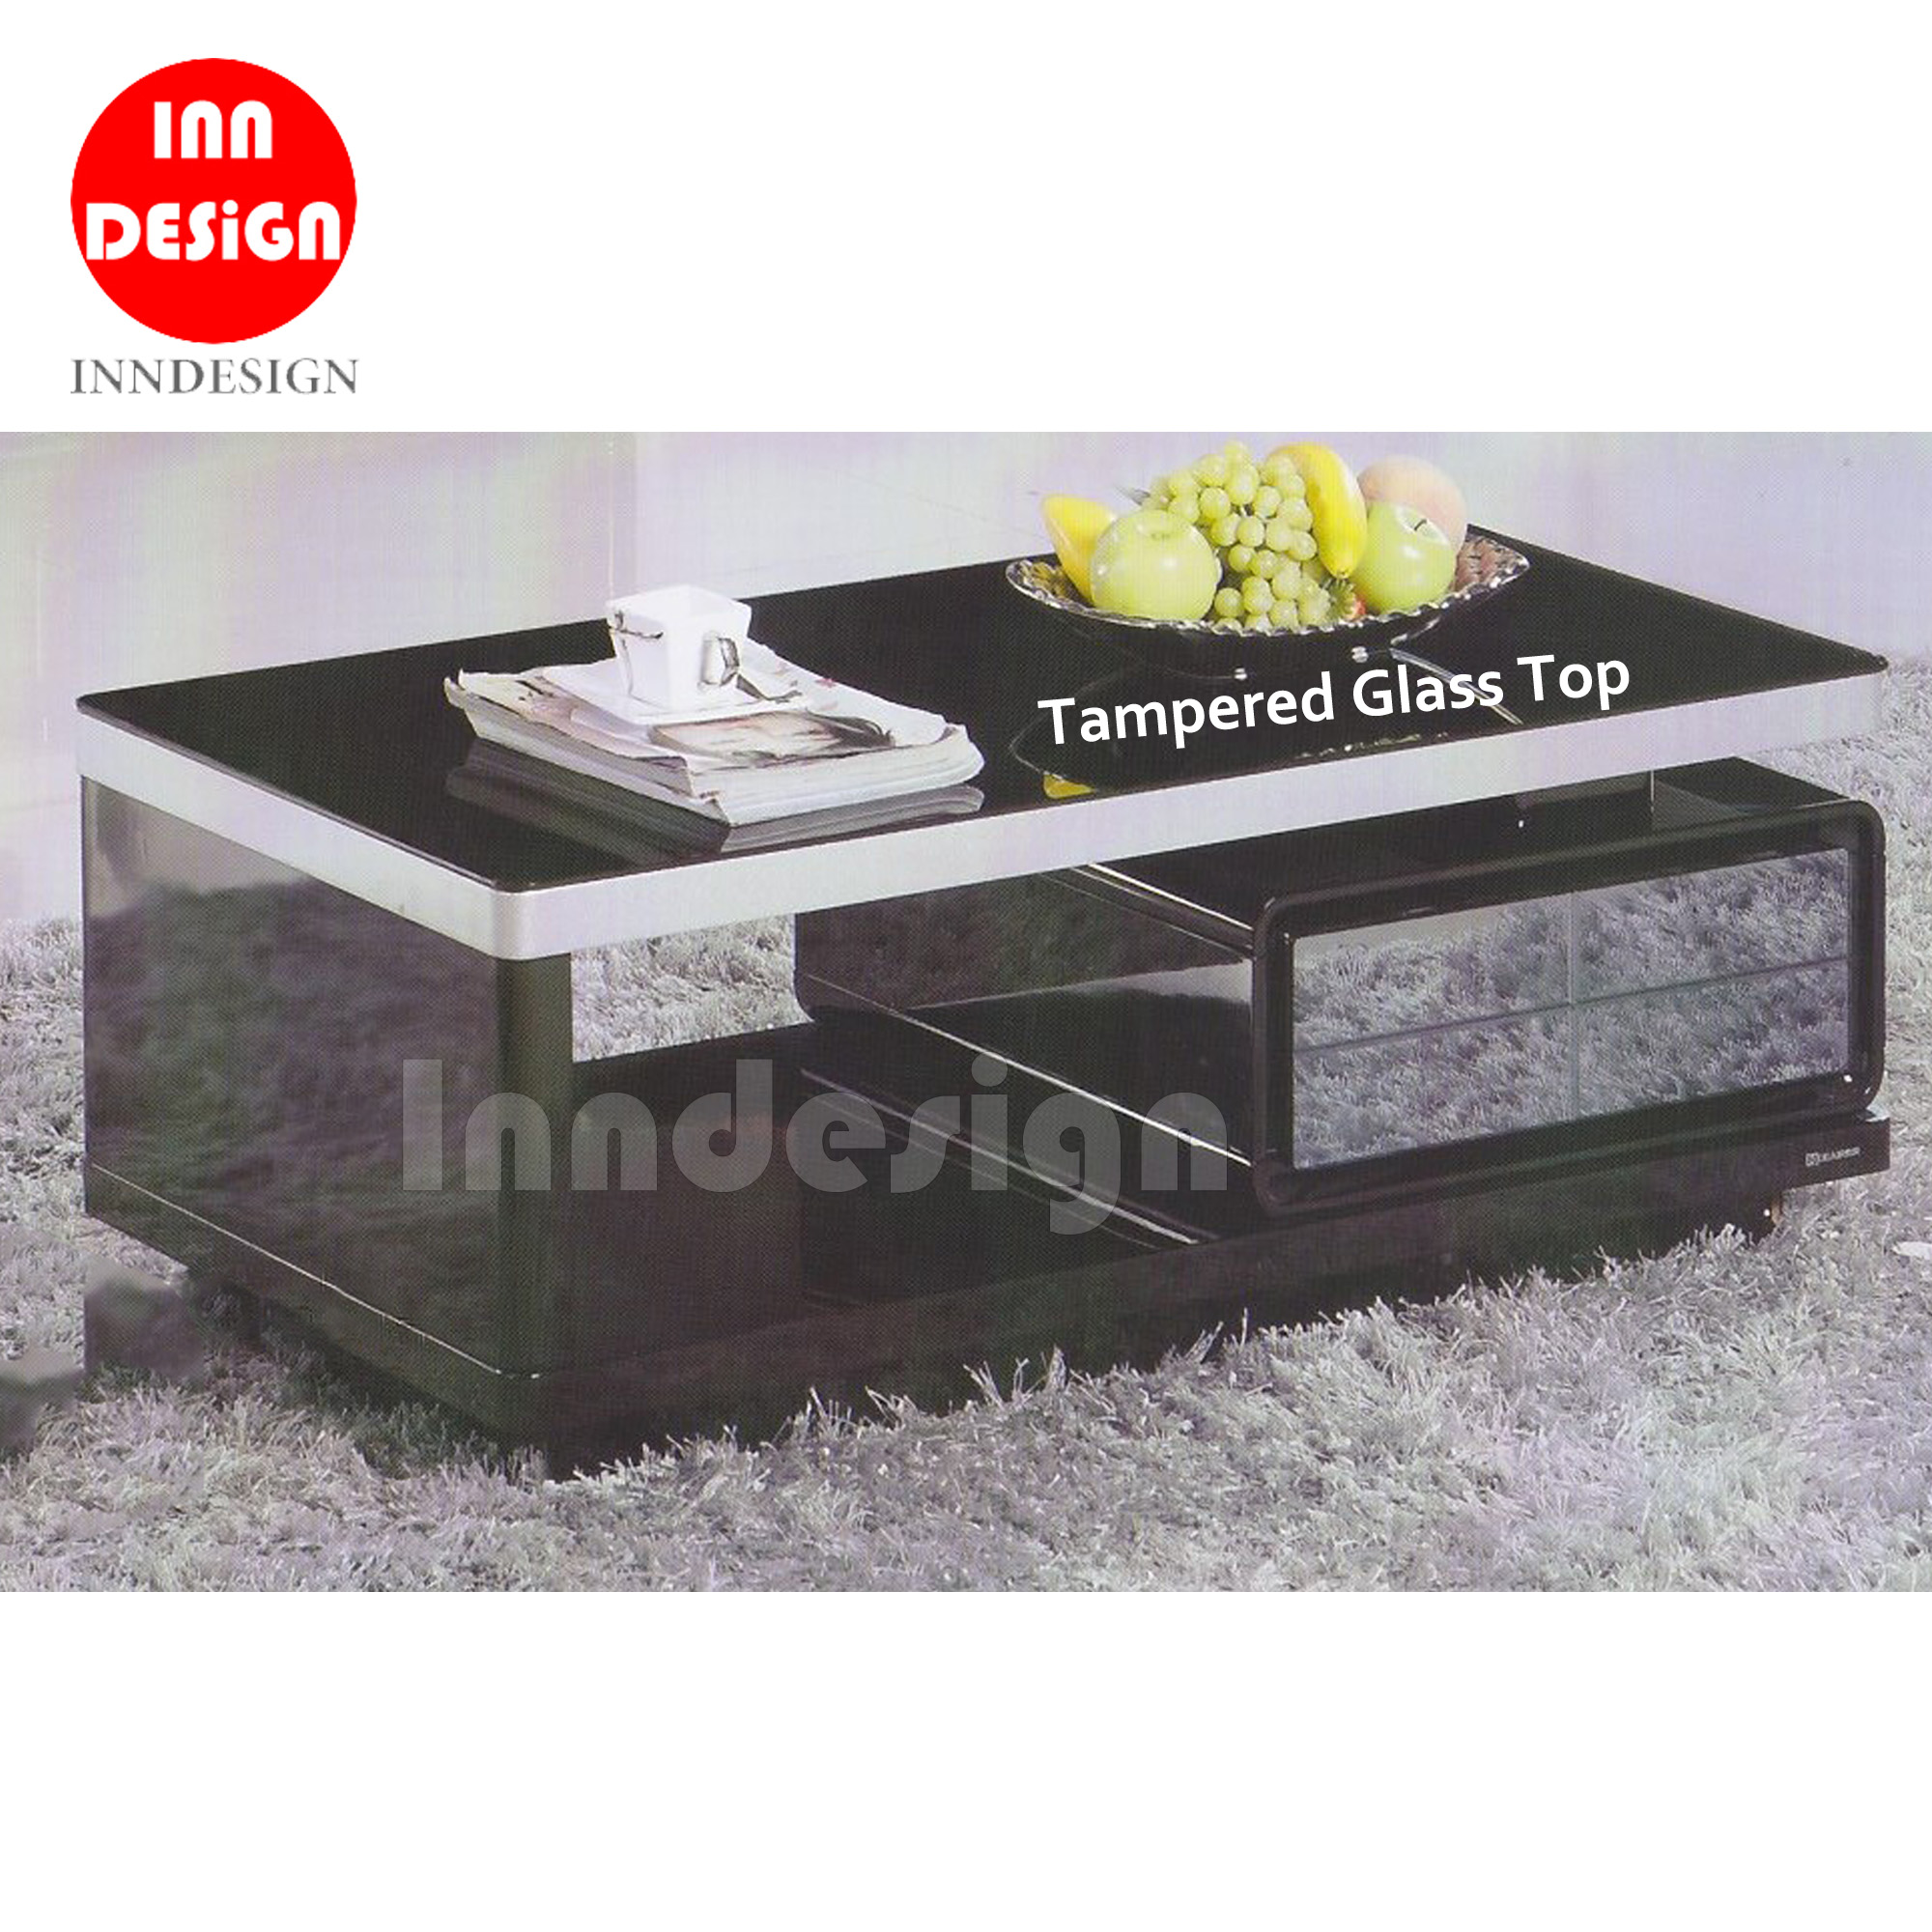 Daily Tempered Glass Coffee Table